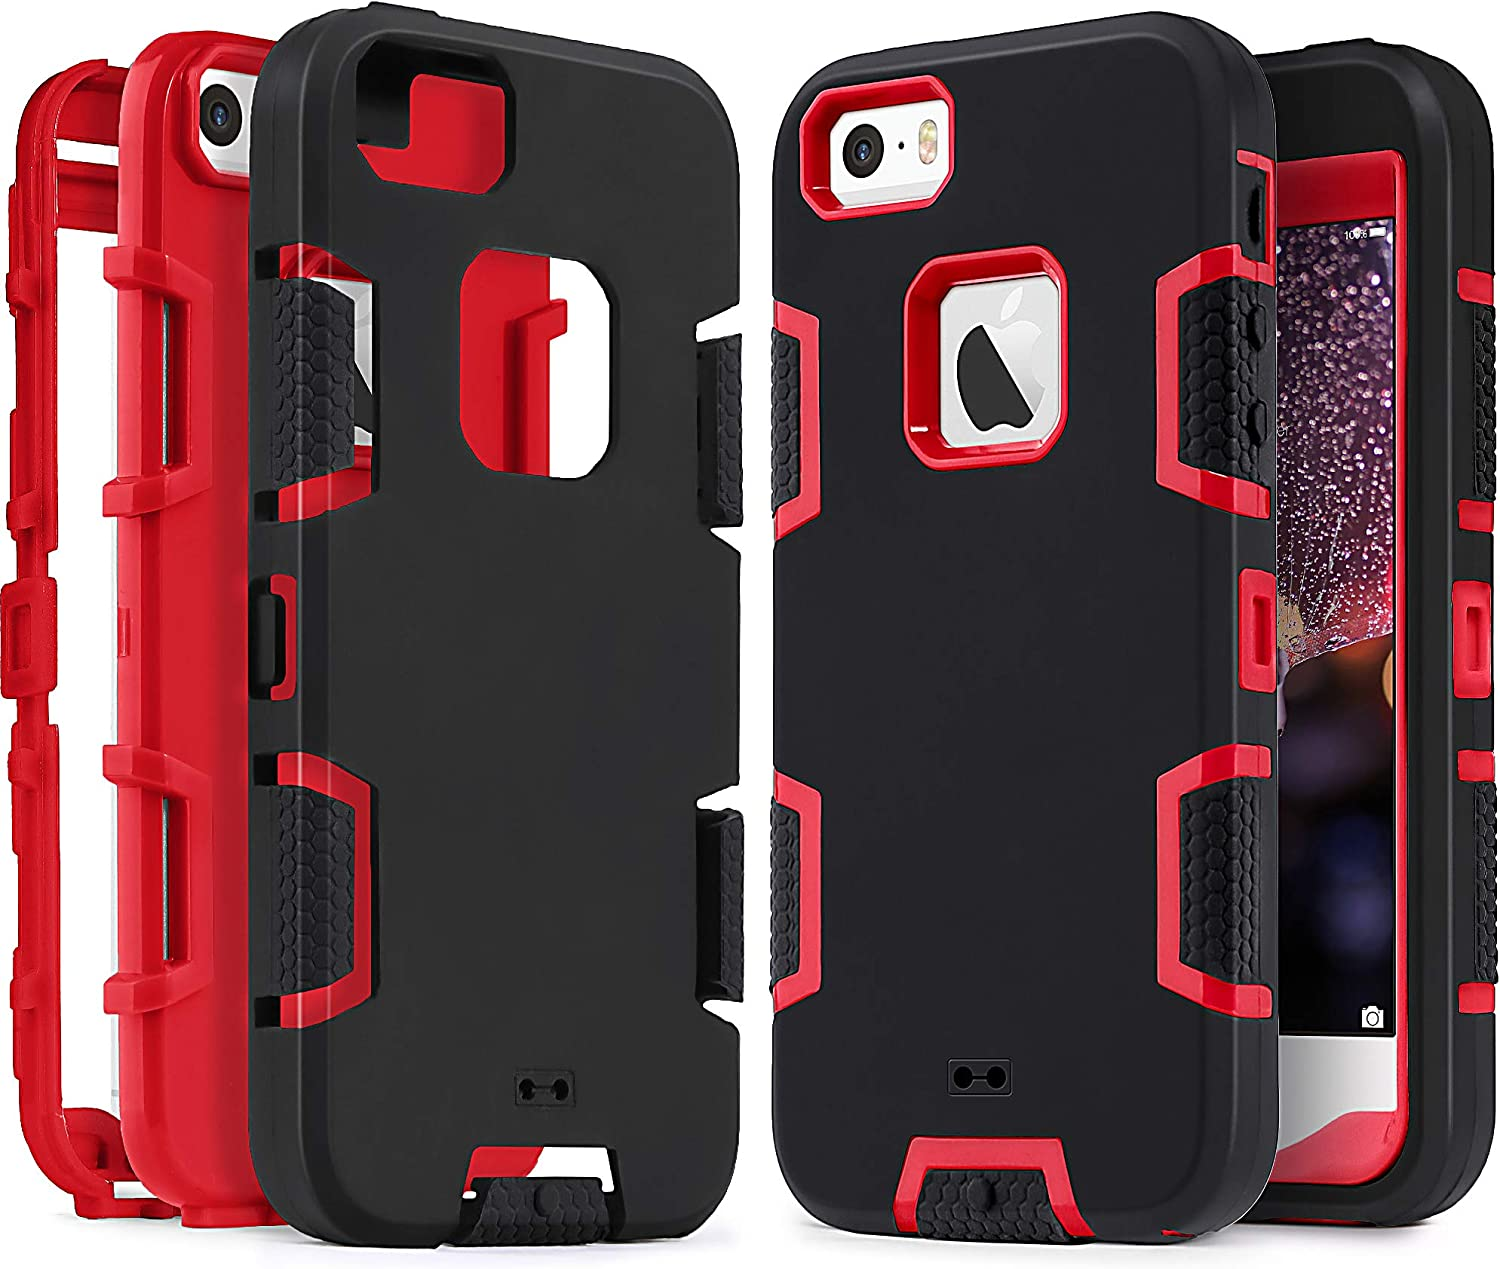 iPhone SE Case, IDweel iPhone 5S Case,iPhone 5 Case, Heavy Duty Protection Shockproof Rugged Drop Resistant Dustproof Anti-Scratch Anti-Slip Protective Cover for Apple iPhone 5 5S SE, Red+Black